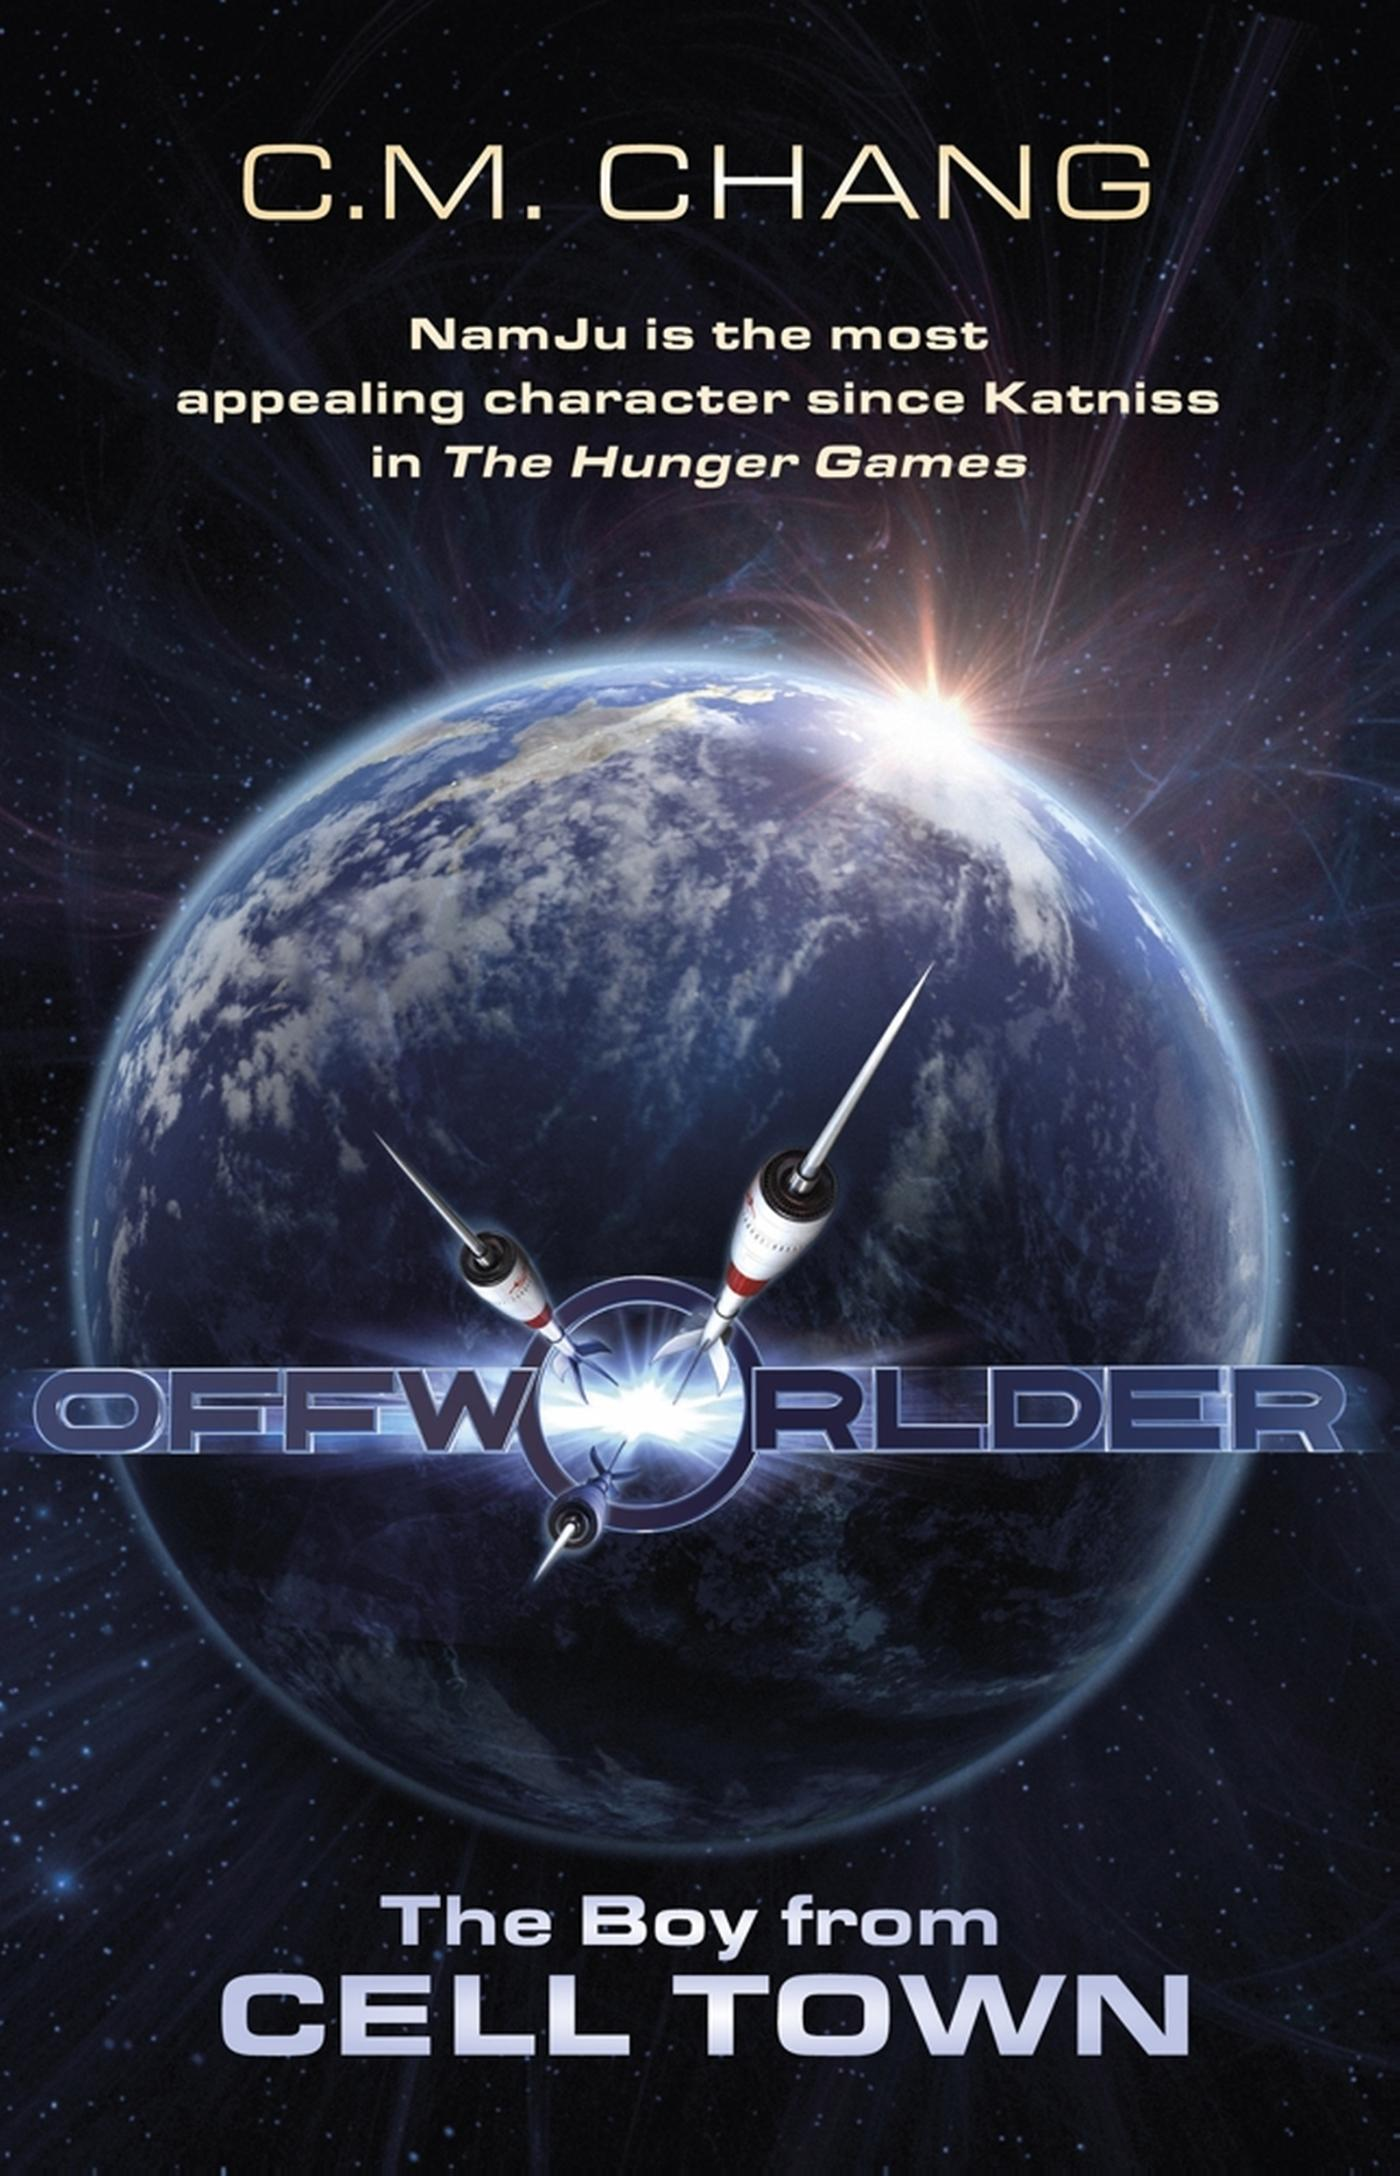 Offworlder 1: the boy from cell town